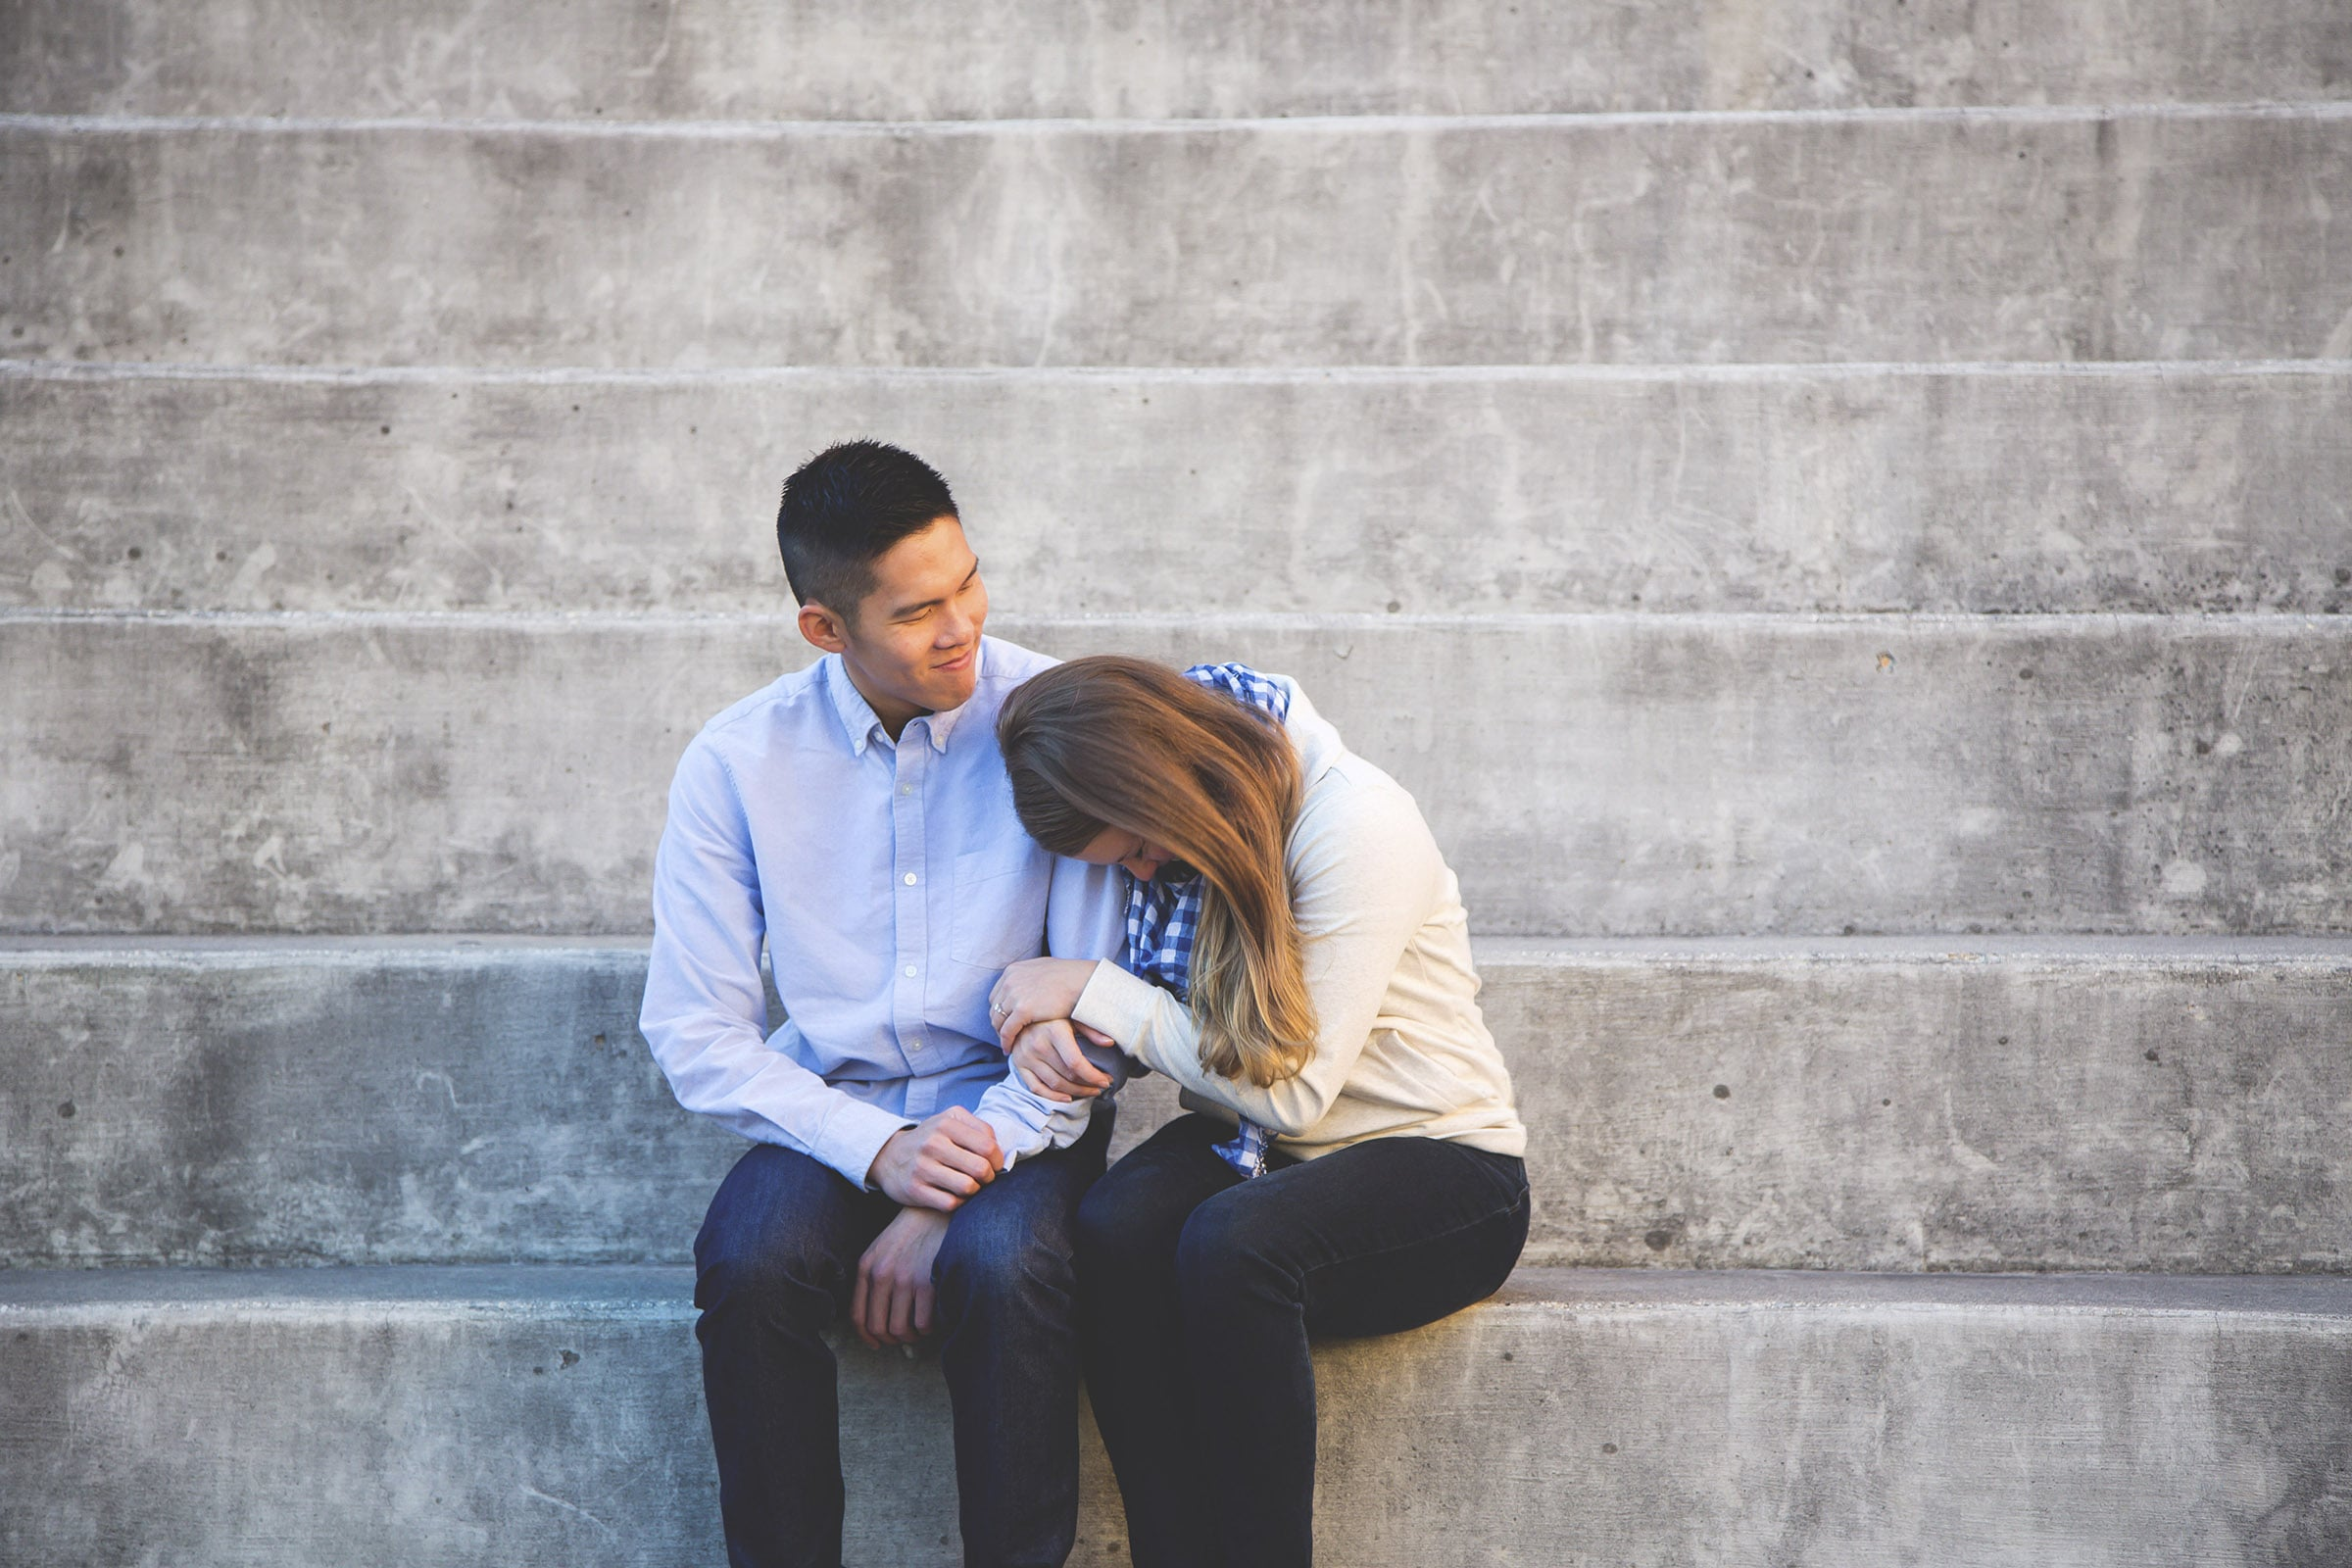 Engagement-Photography-Moments-by-Lauren-Winnipeg-MB-Downtown-Hamilton-Photographer-Toronto-GTA-Niagara-Oakville-Portrait-Lauren-Valvasori-Image-Photo-12.jpg